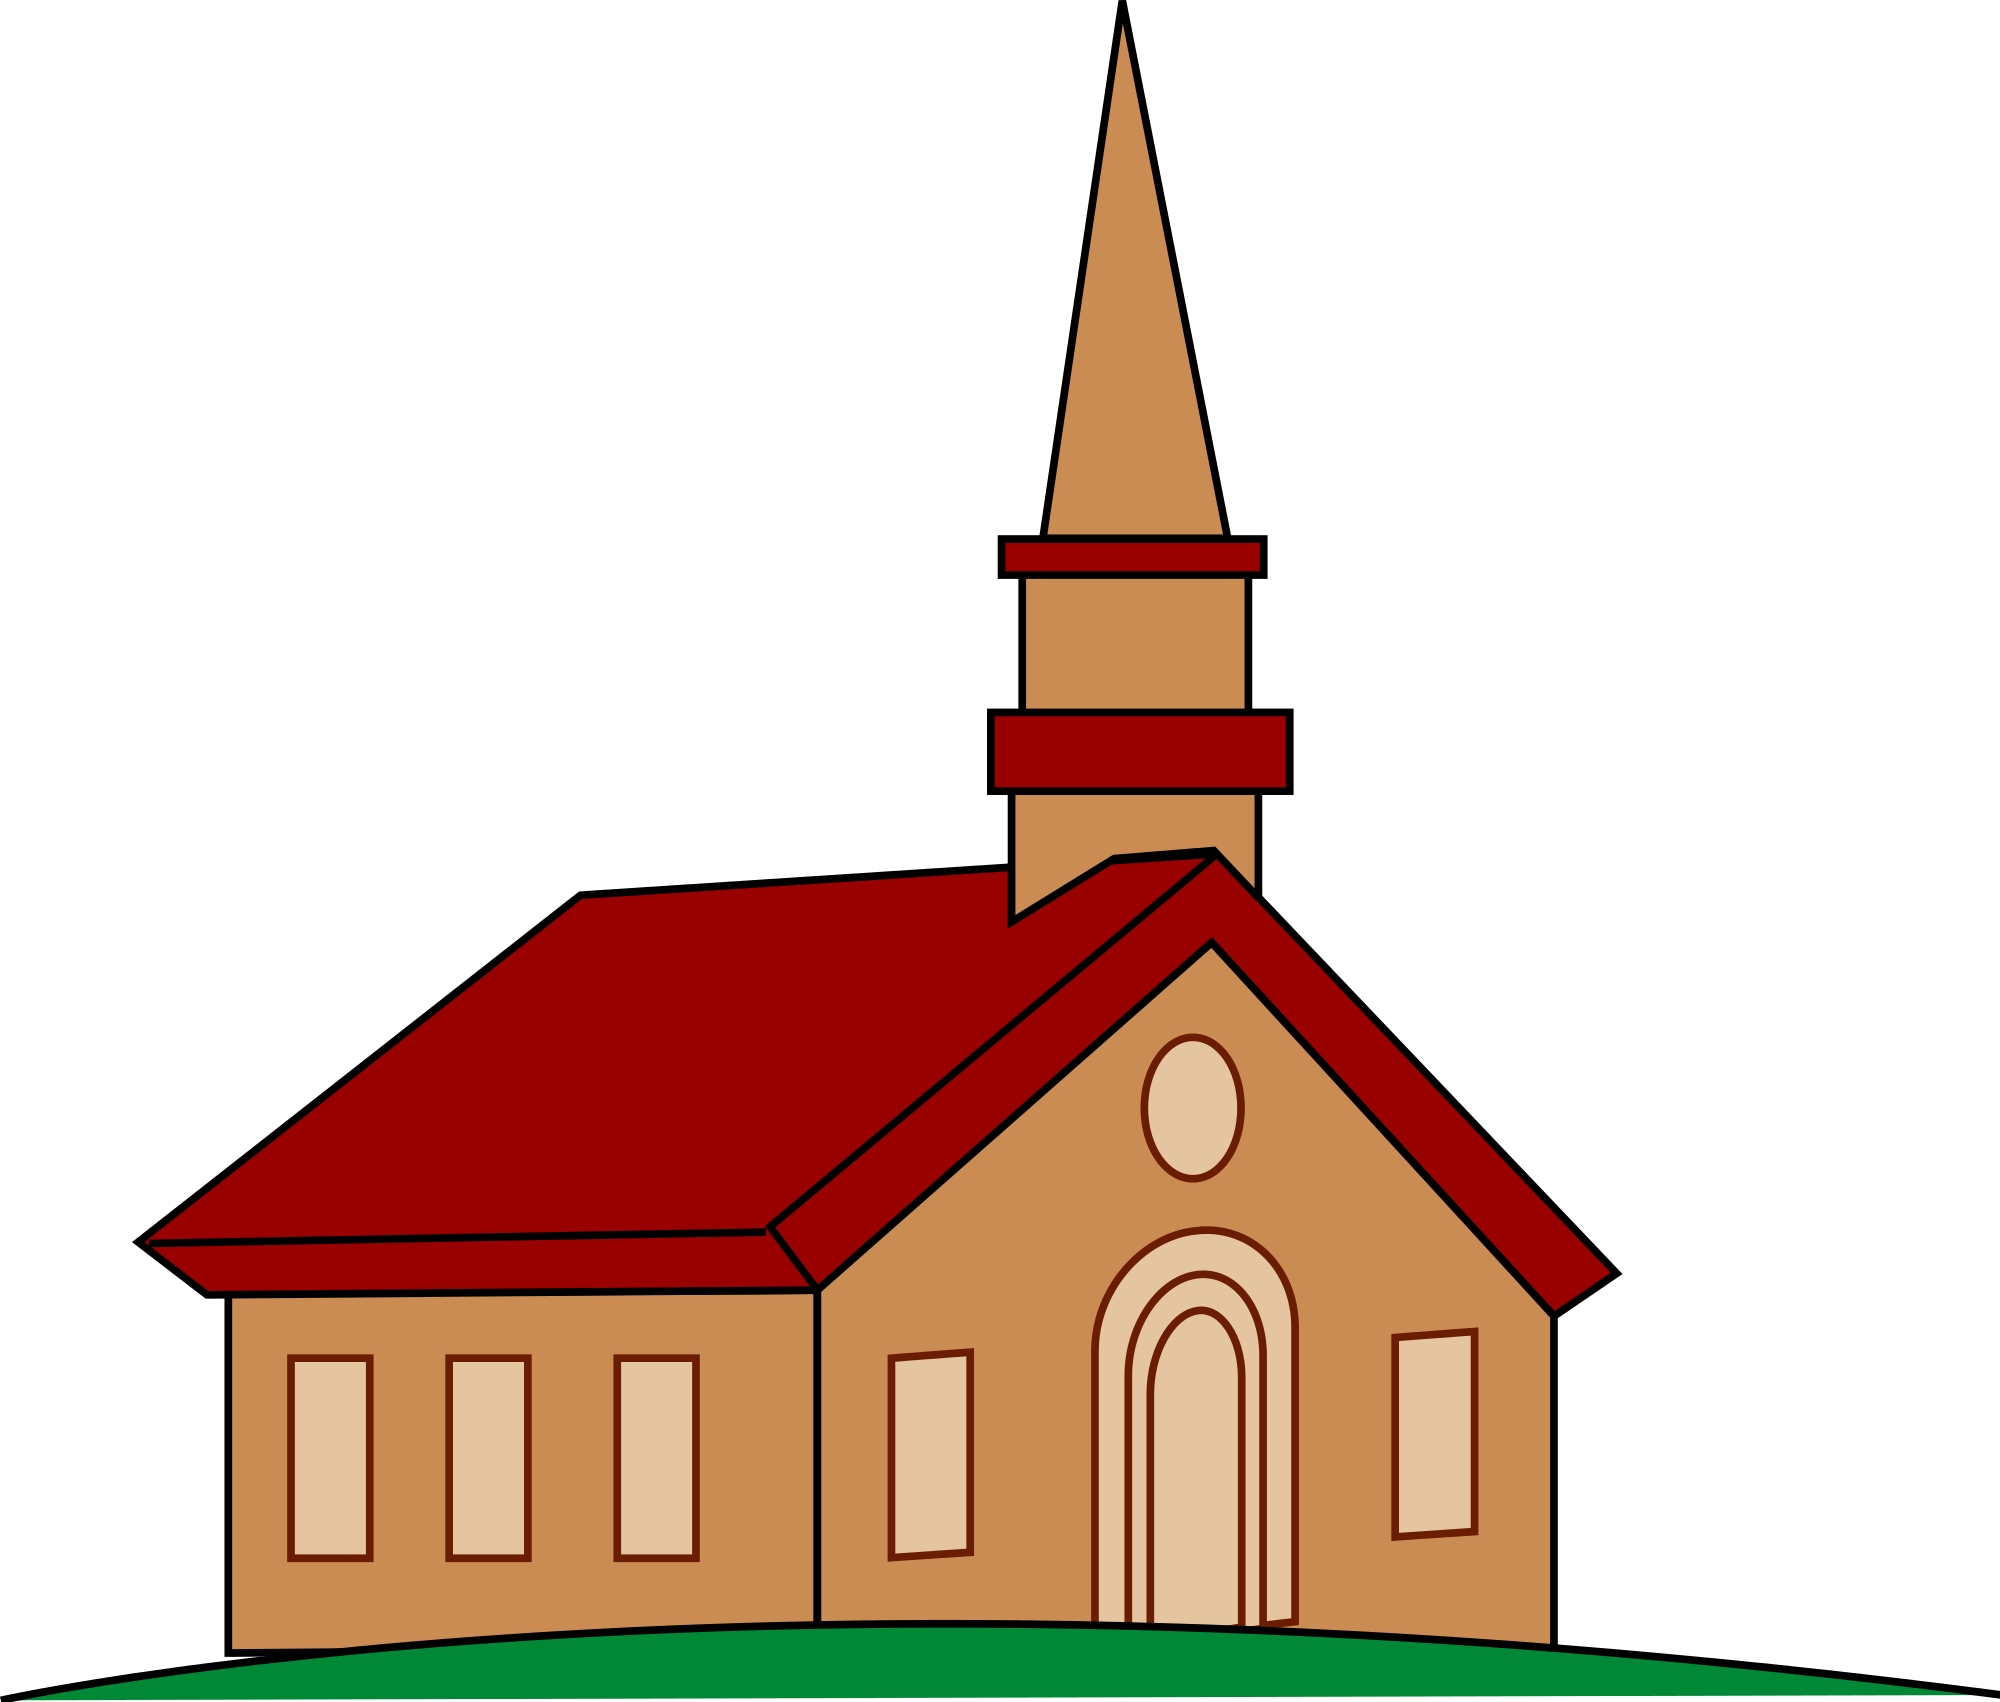 Abandoned church png. Silhouette clip art at